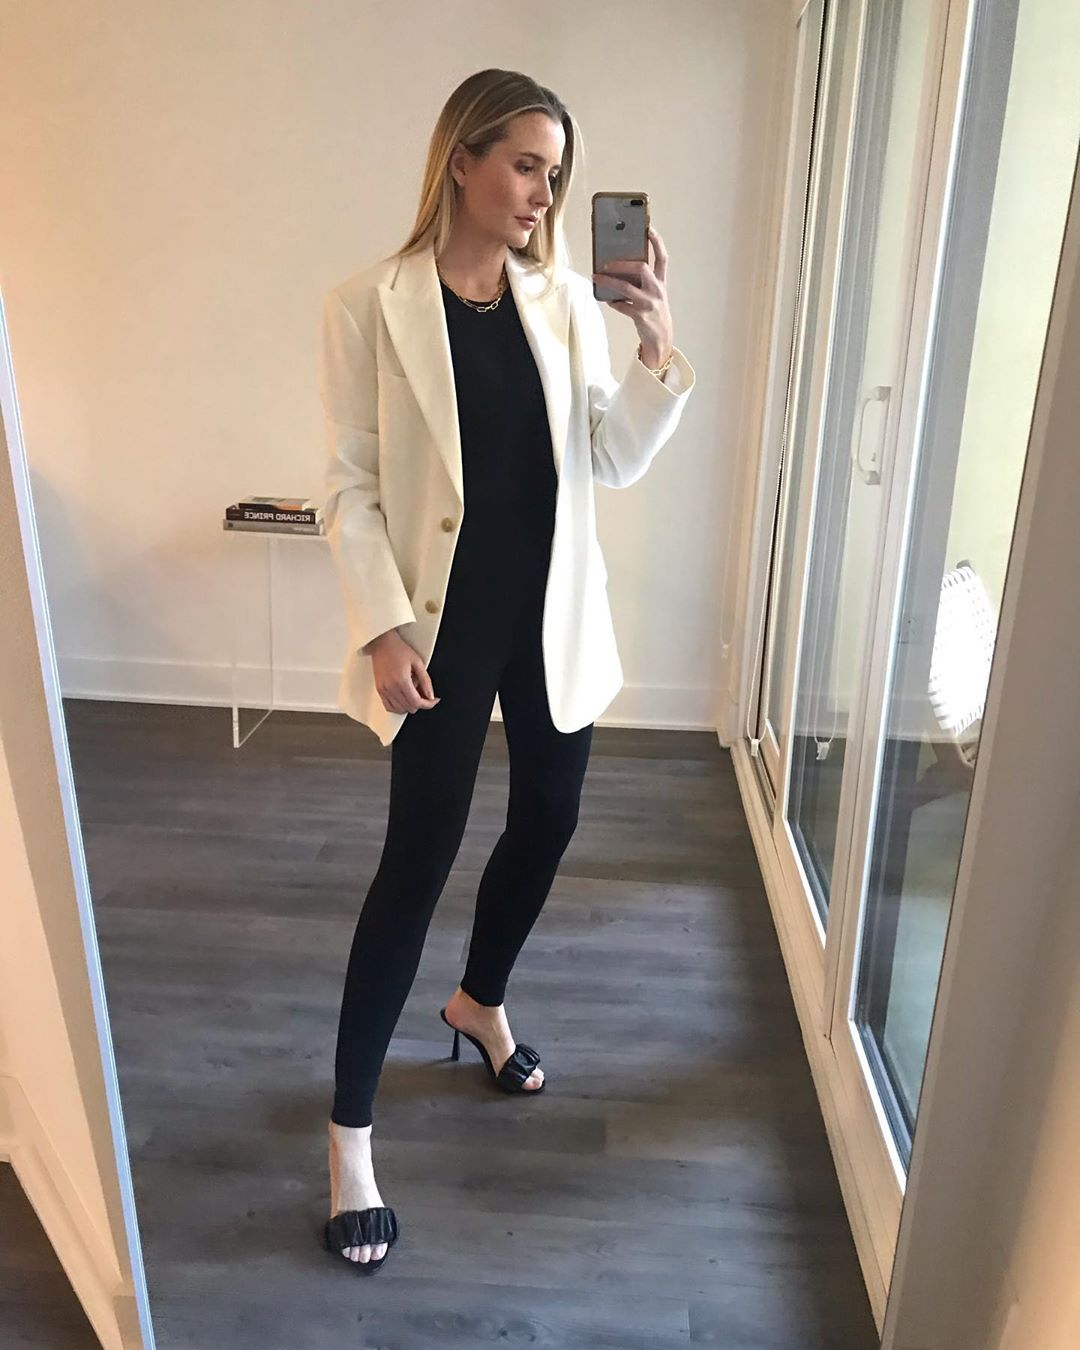 How to Make Leggings Look Daytime Chic